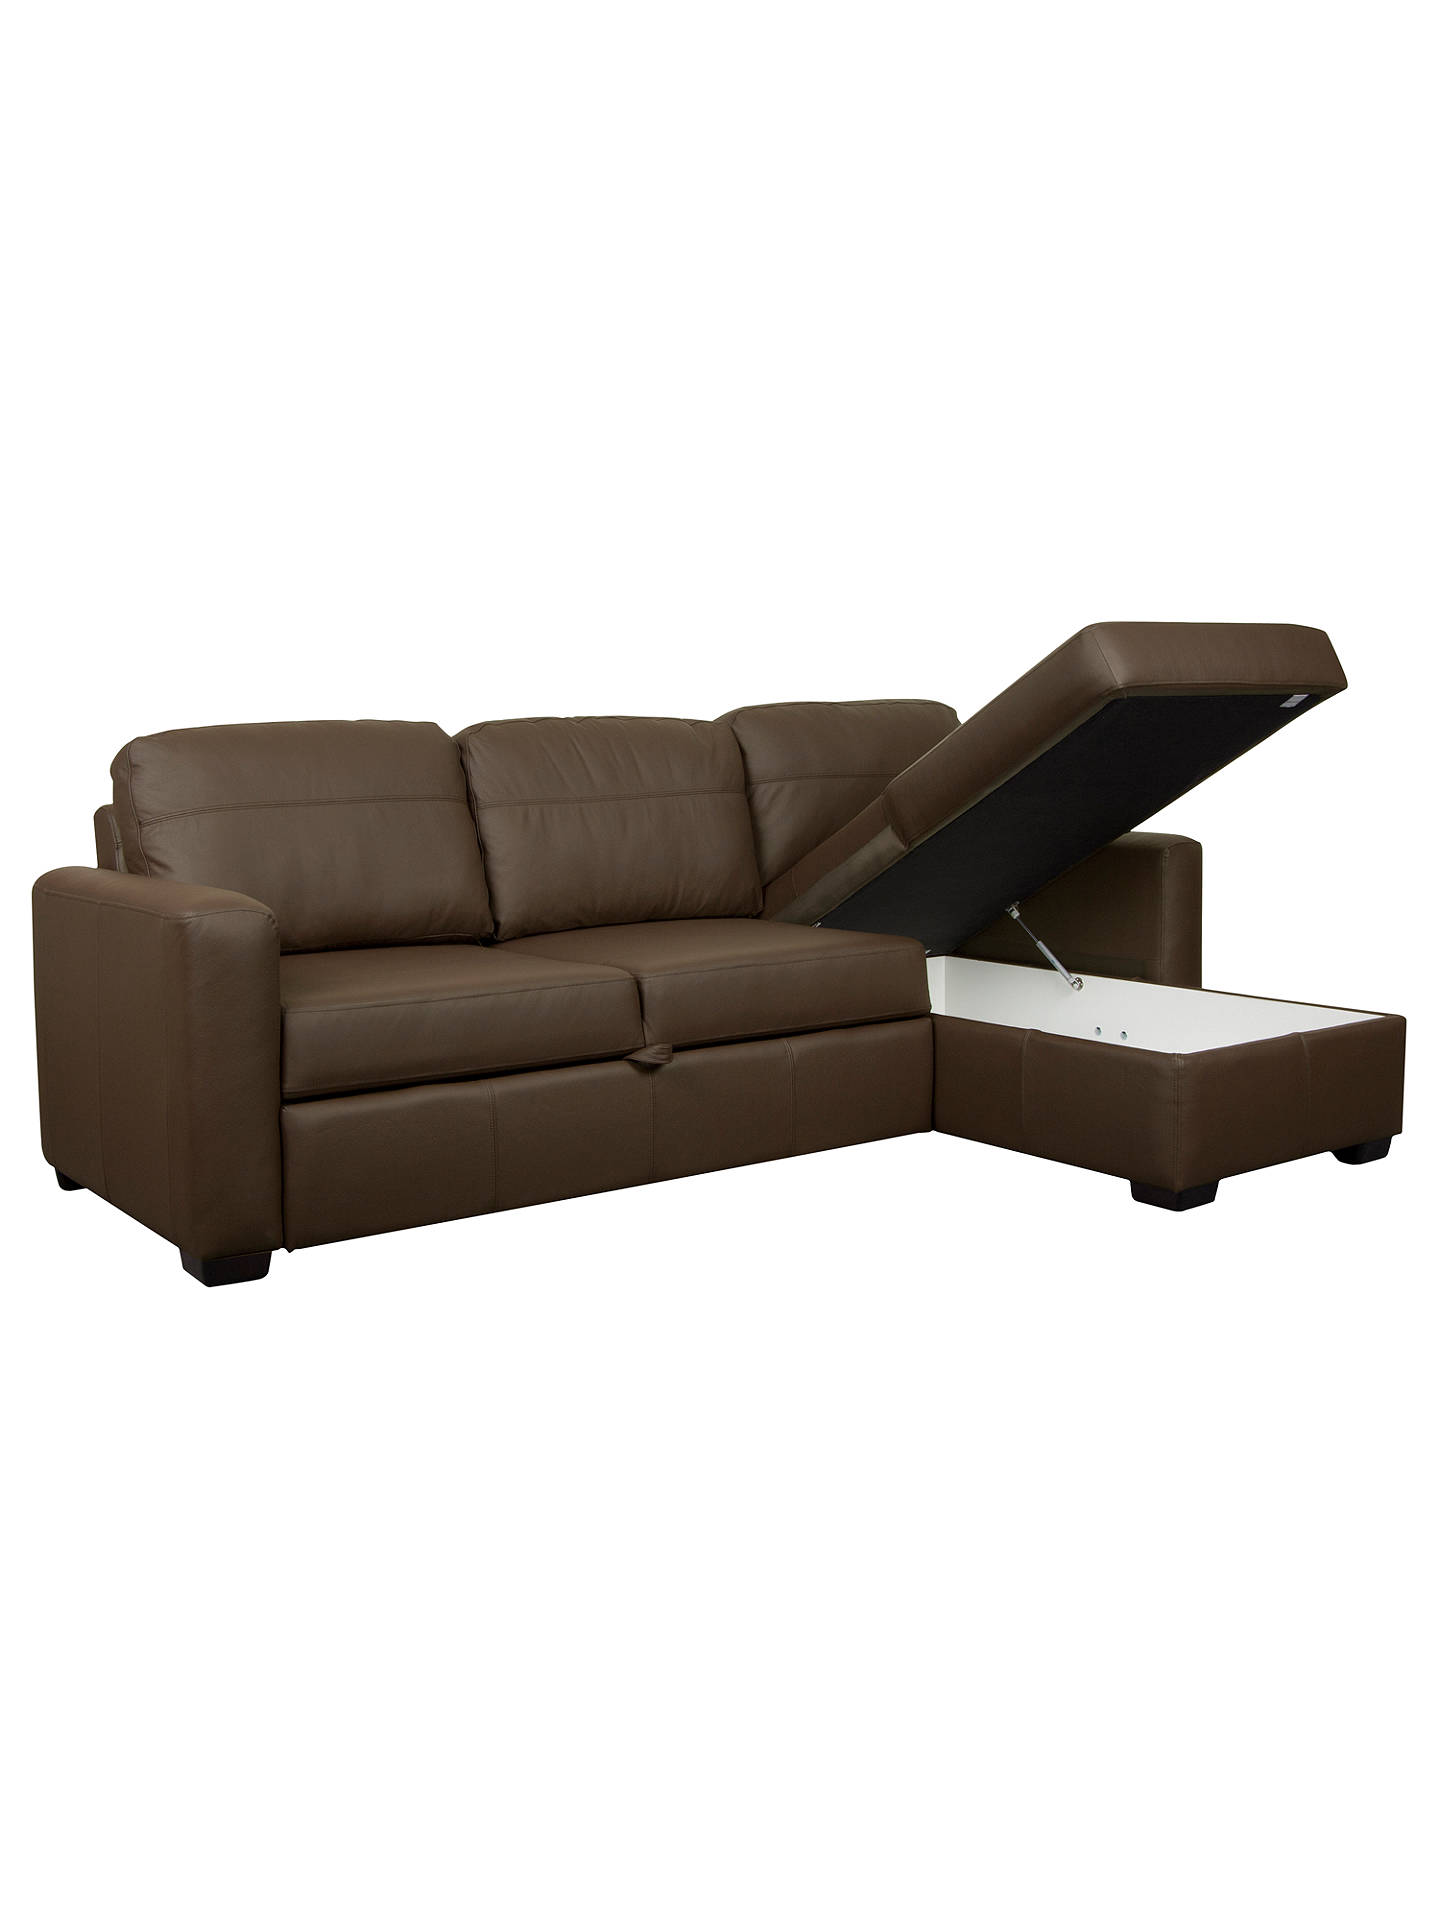 John Lewis Sacha Large Leather Sofa Bed With Foam Mattress Madras Chocolate Online At Johnlewis